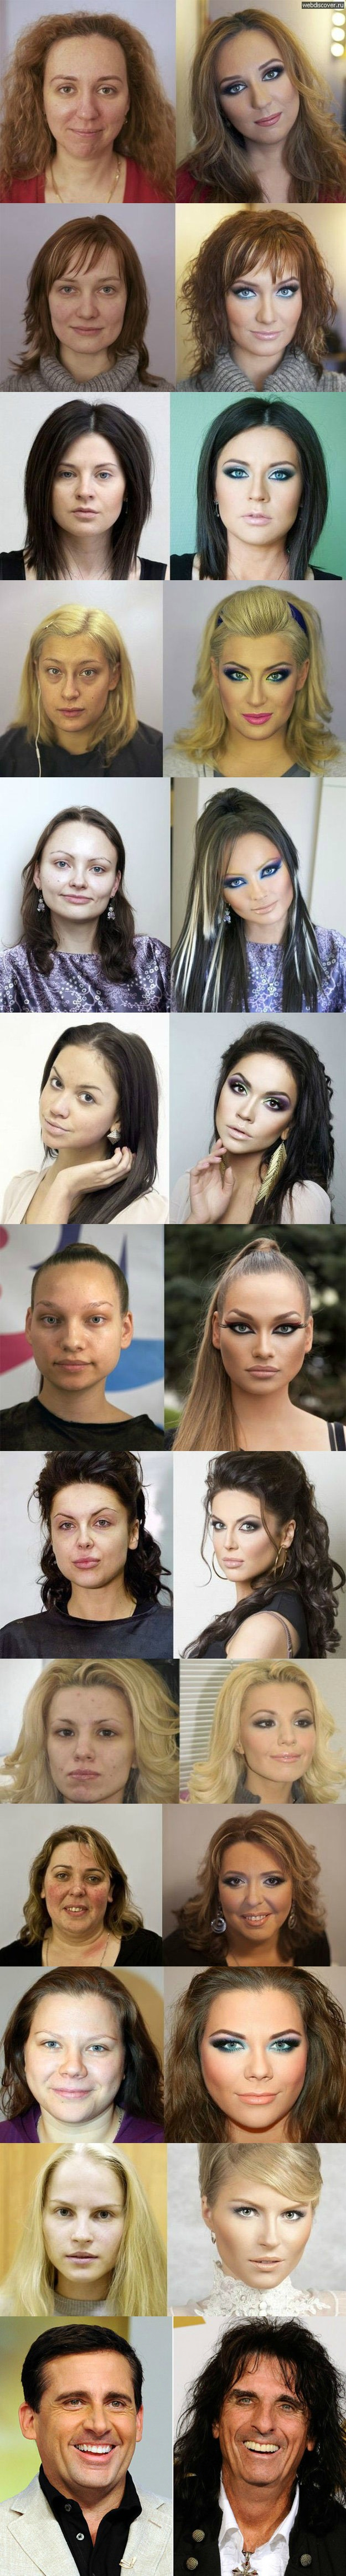 How Make-up can really transform people